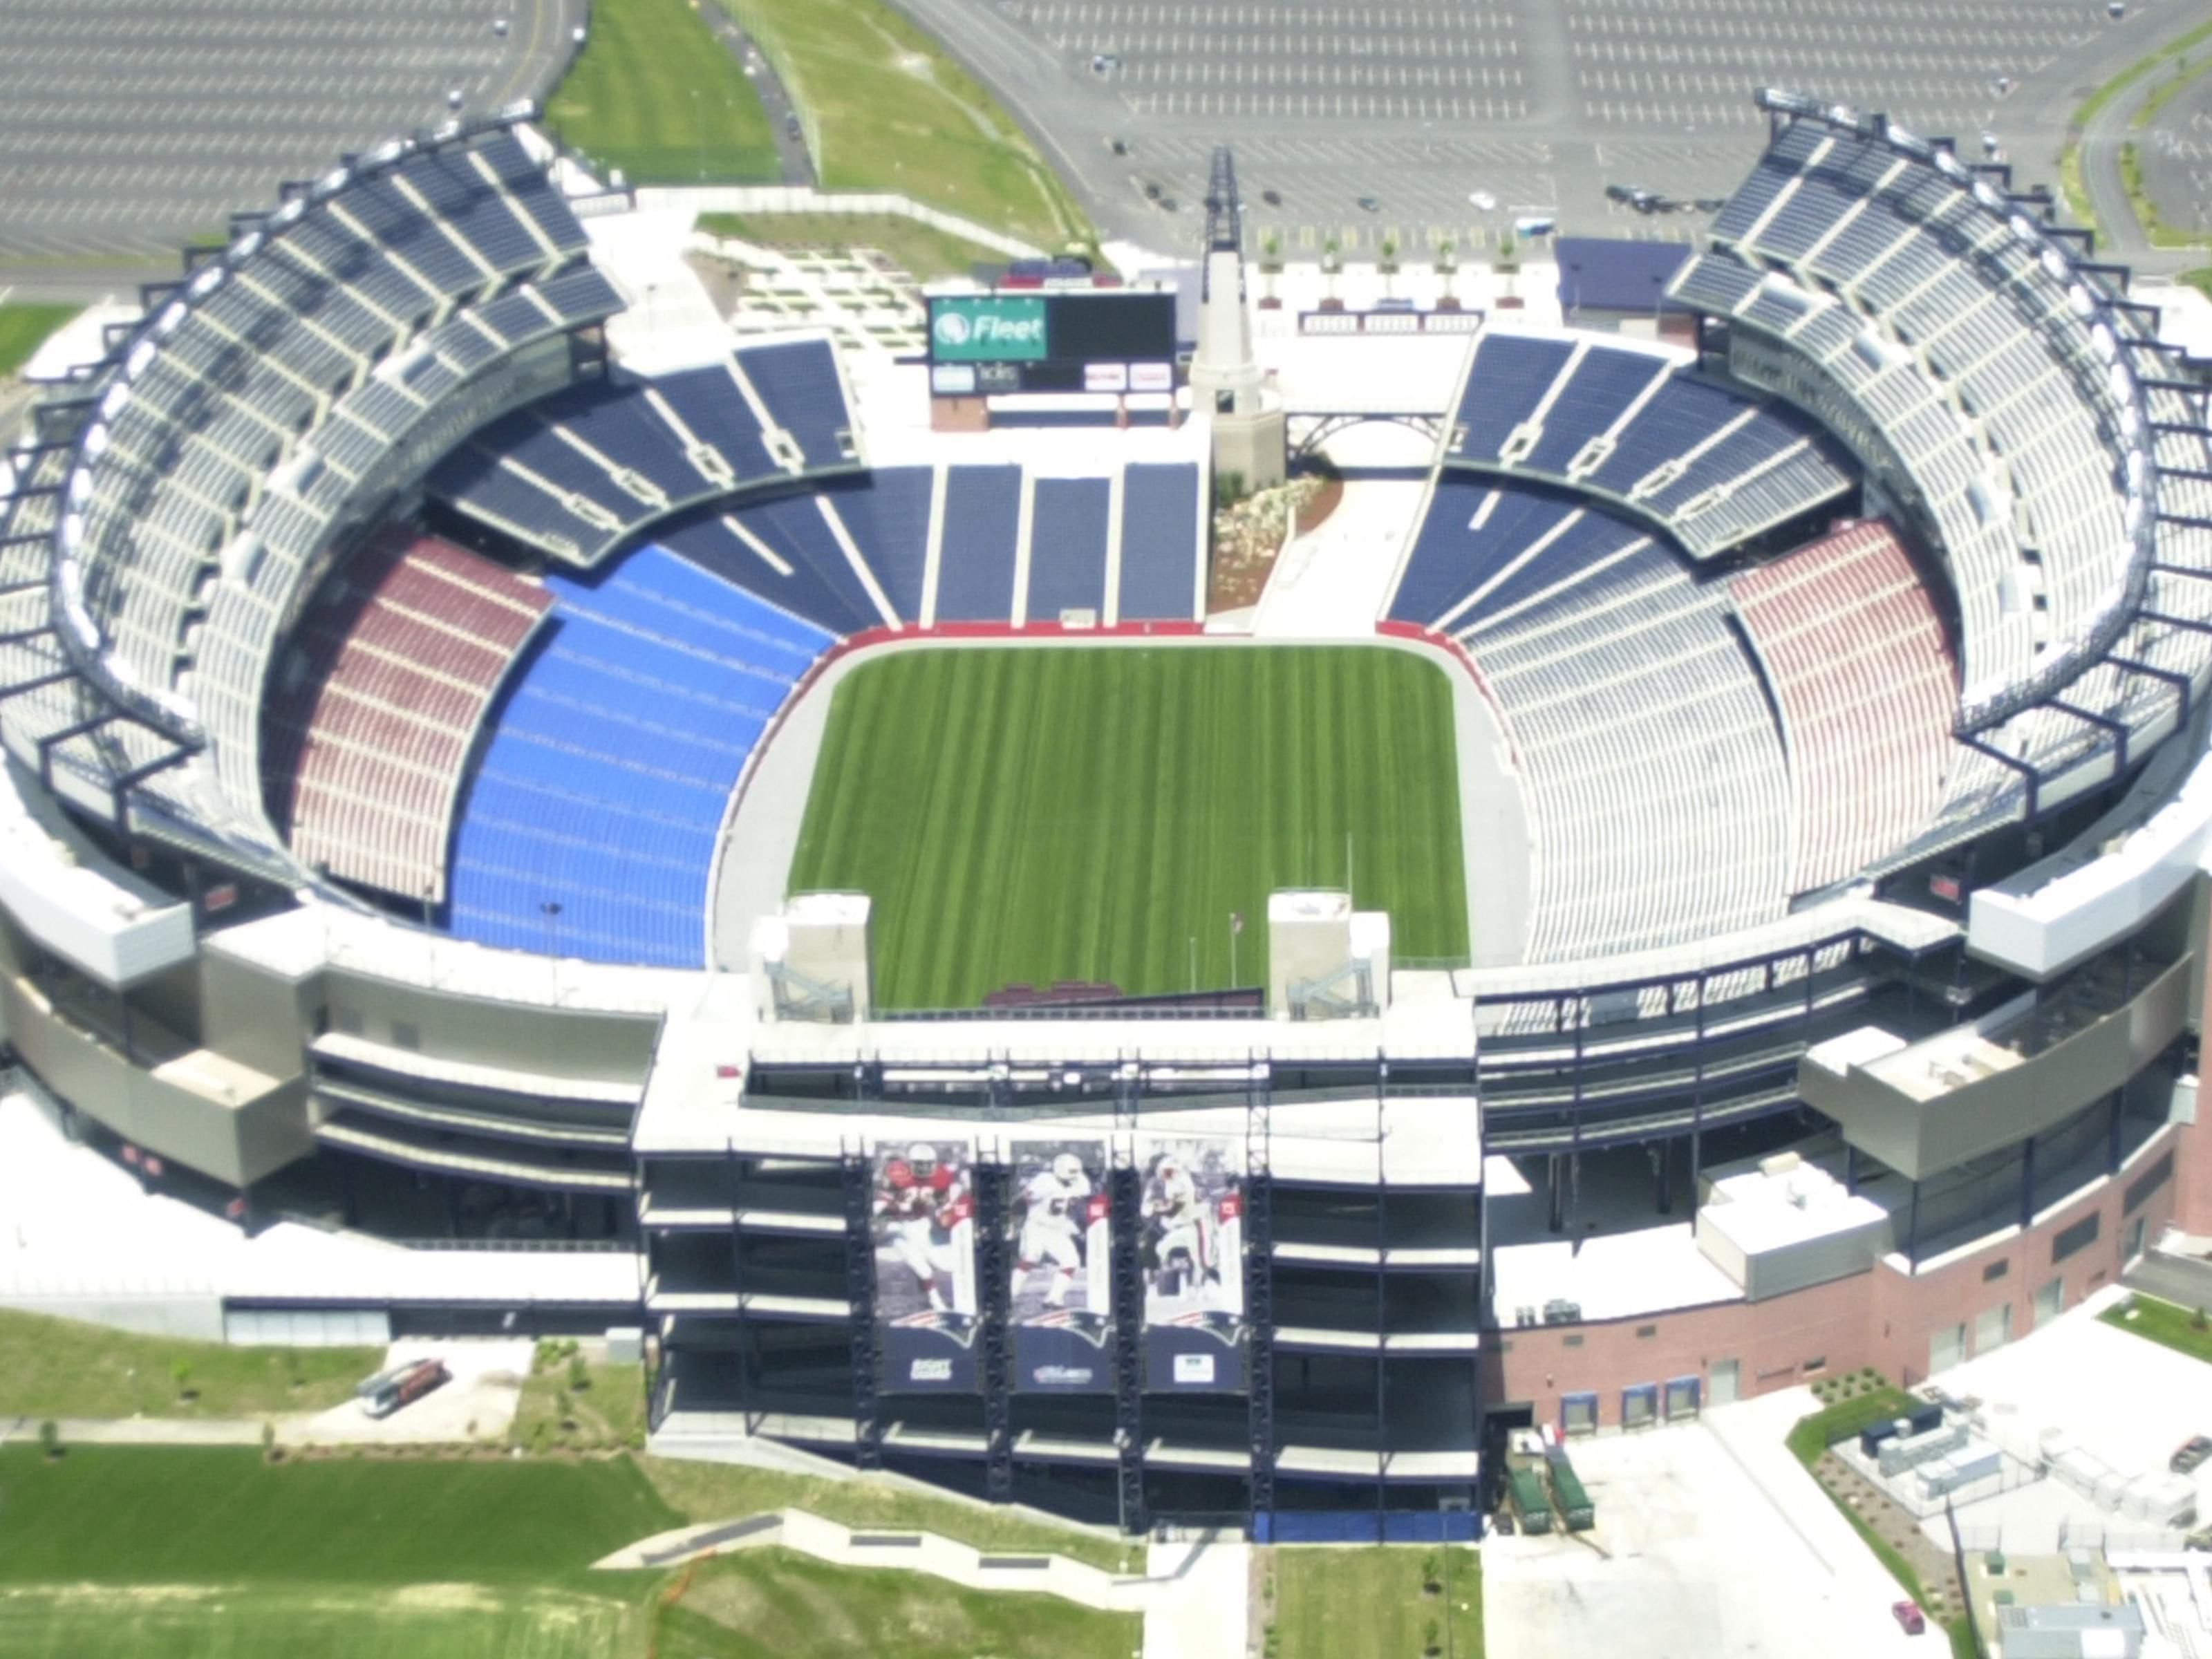 Gillette Stadium Home of the NE Patriots and Revolution